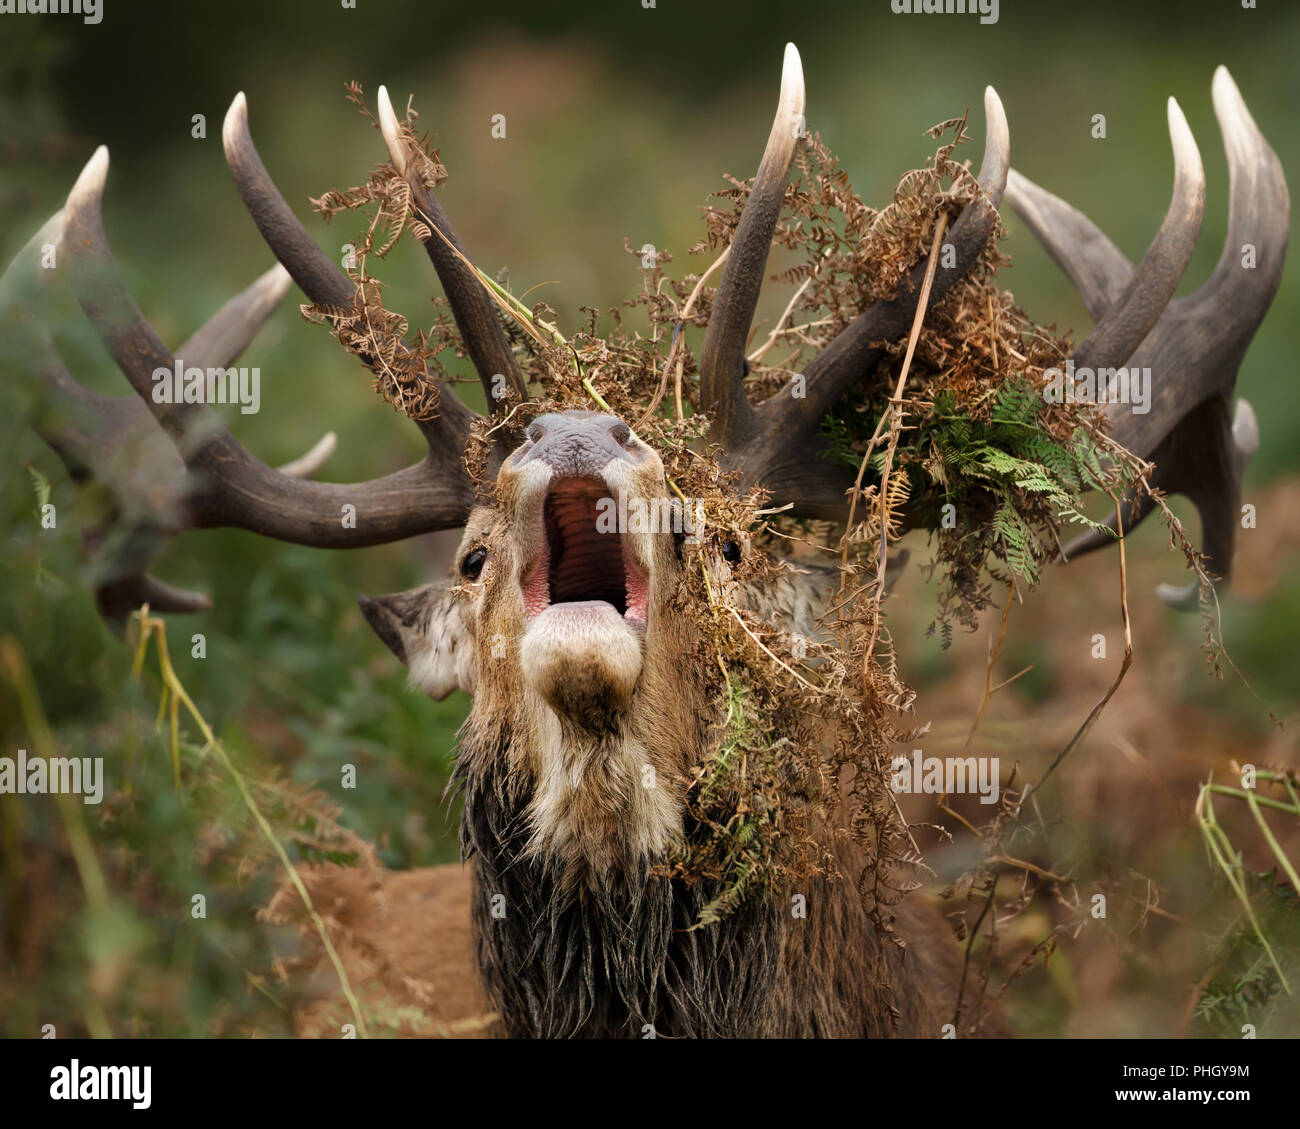 Close up of a red deer stag bellowing with ferns draped around its antlers  during rutting season, UK. - Stock Image